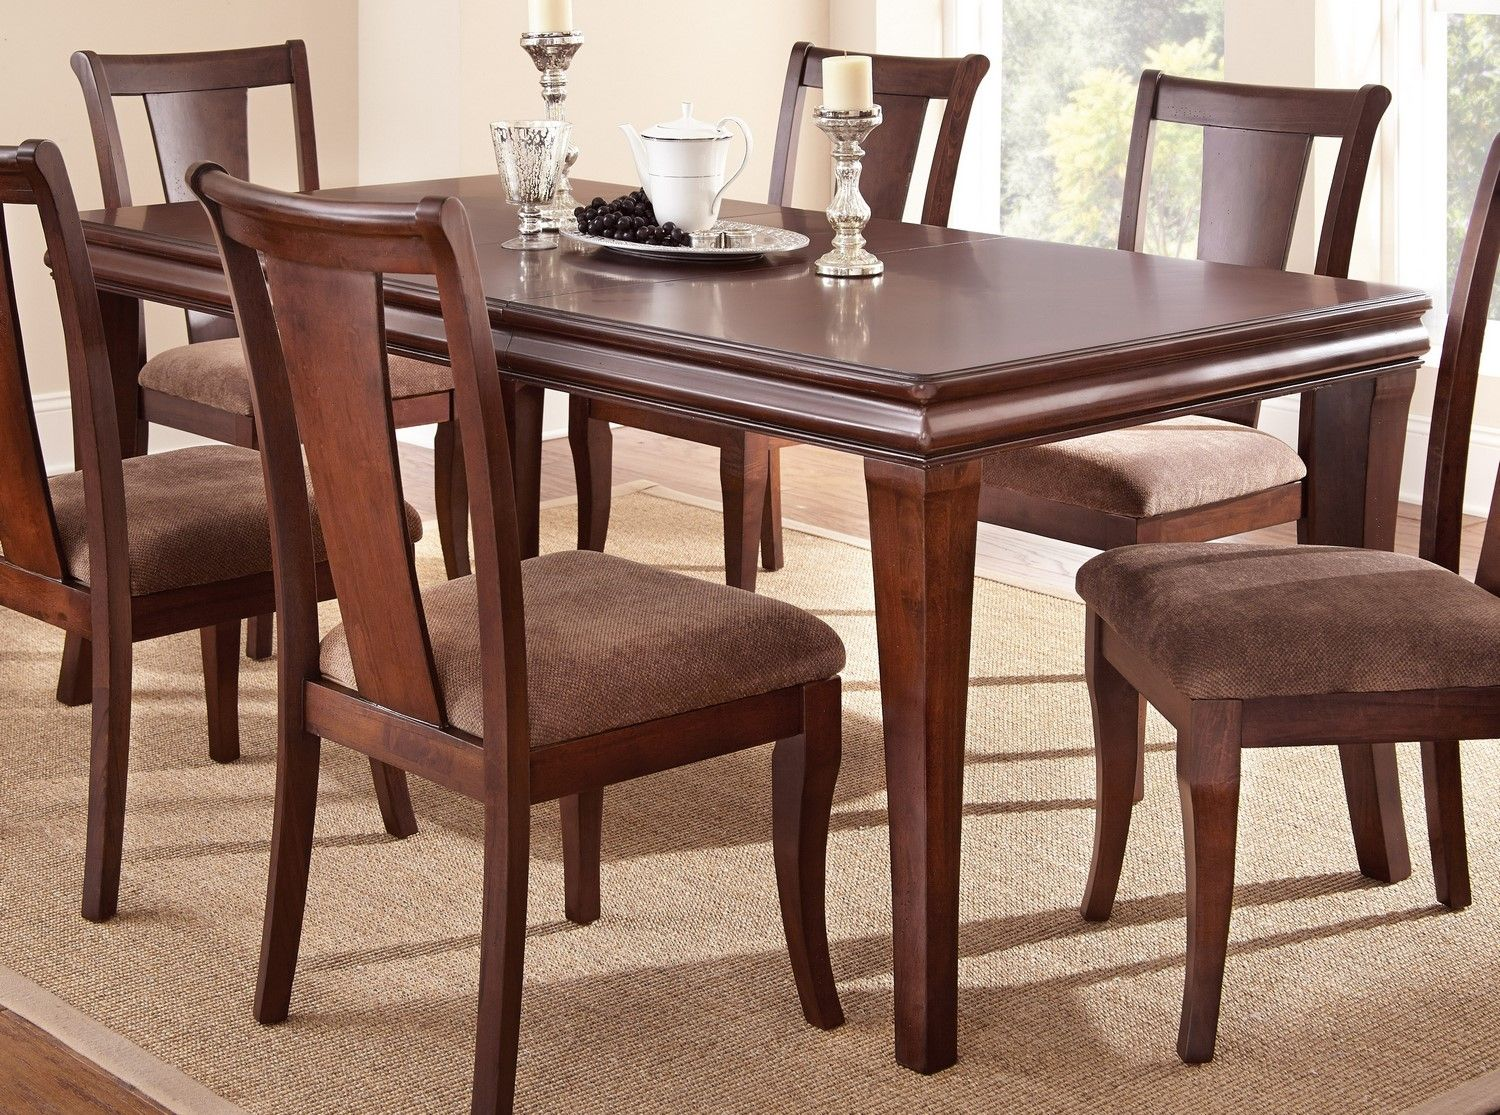 steve silver aubrey 7 piece 79x40 rectangular dining room